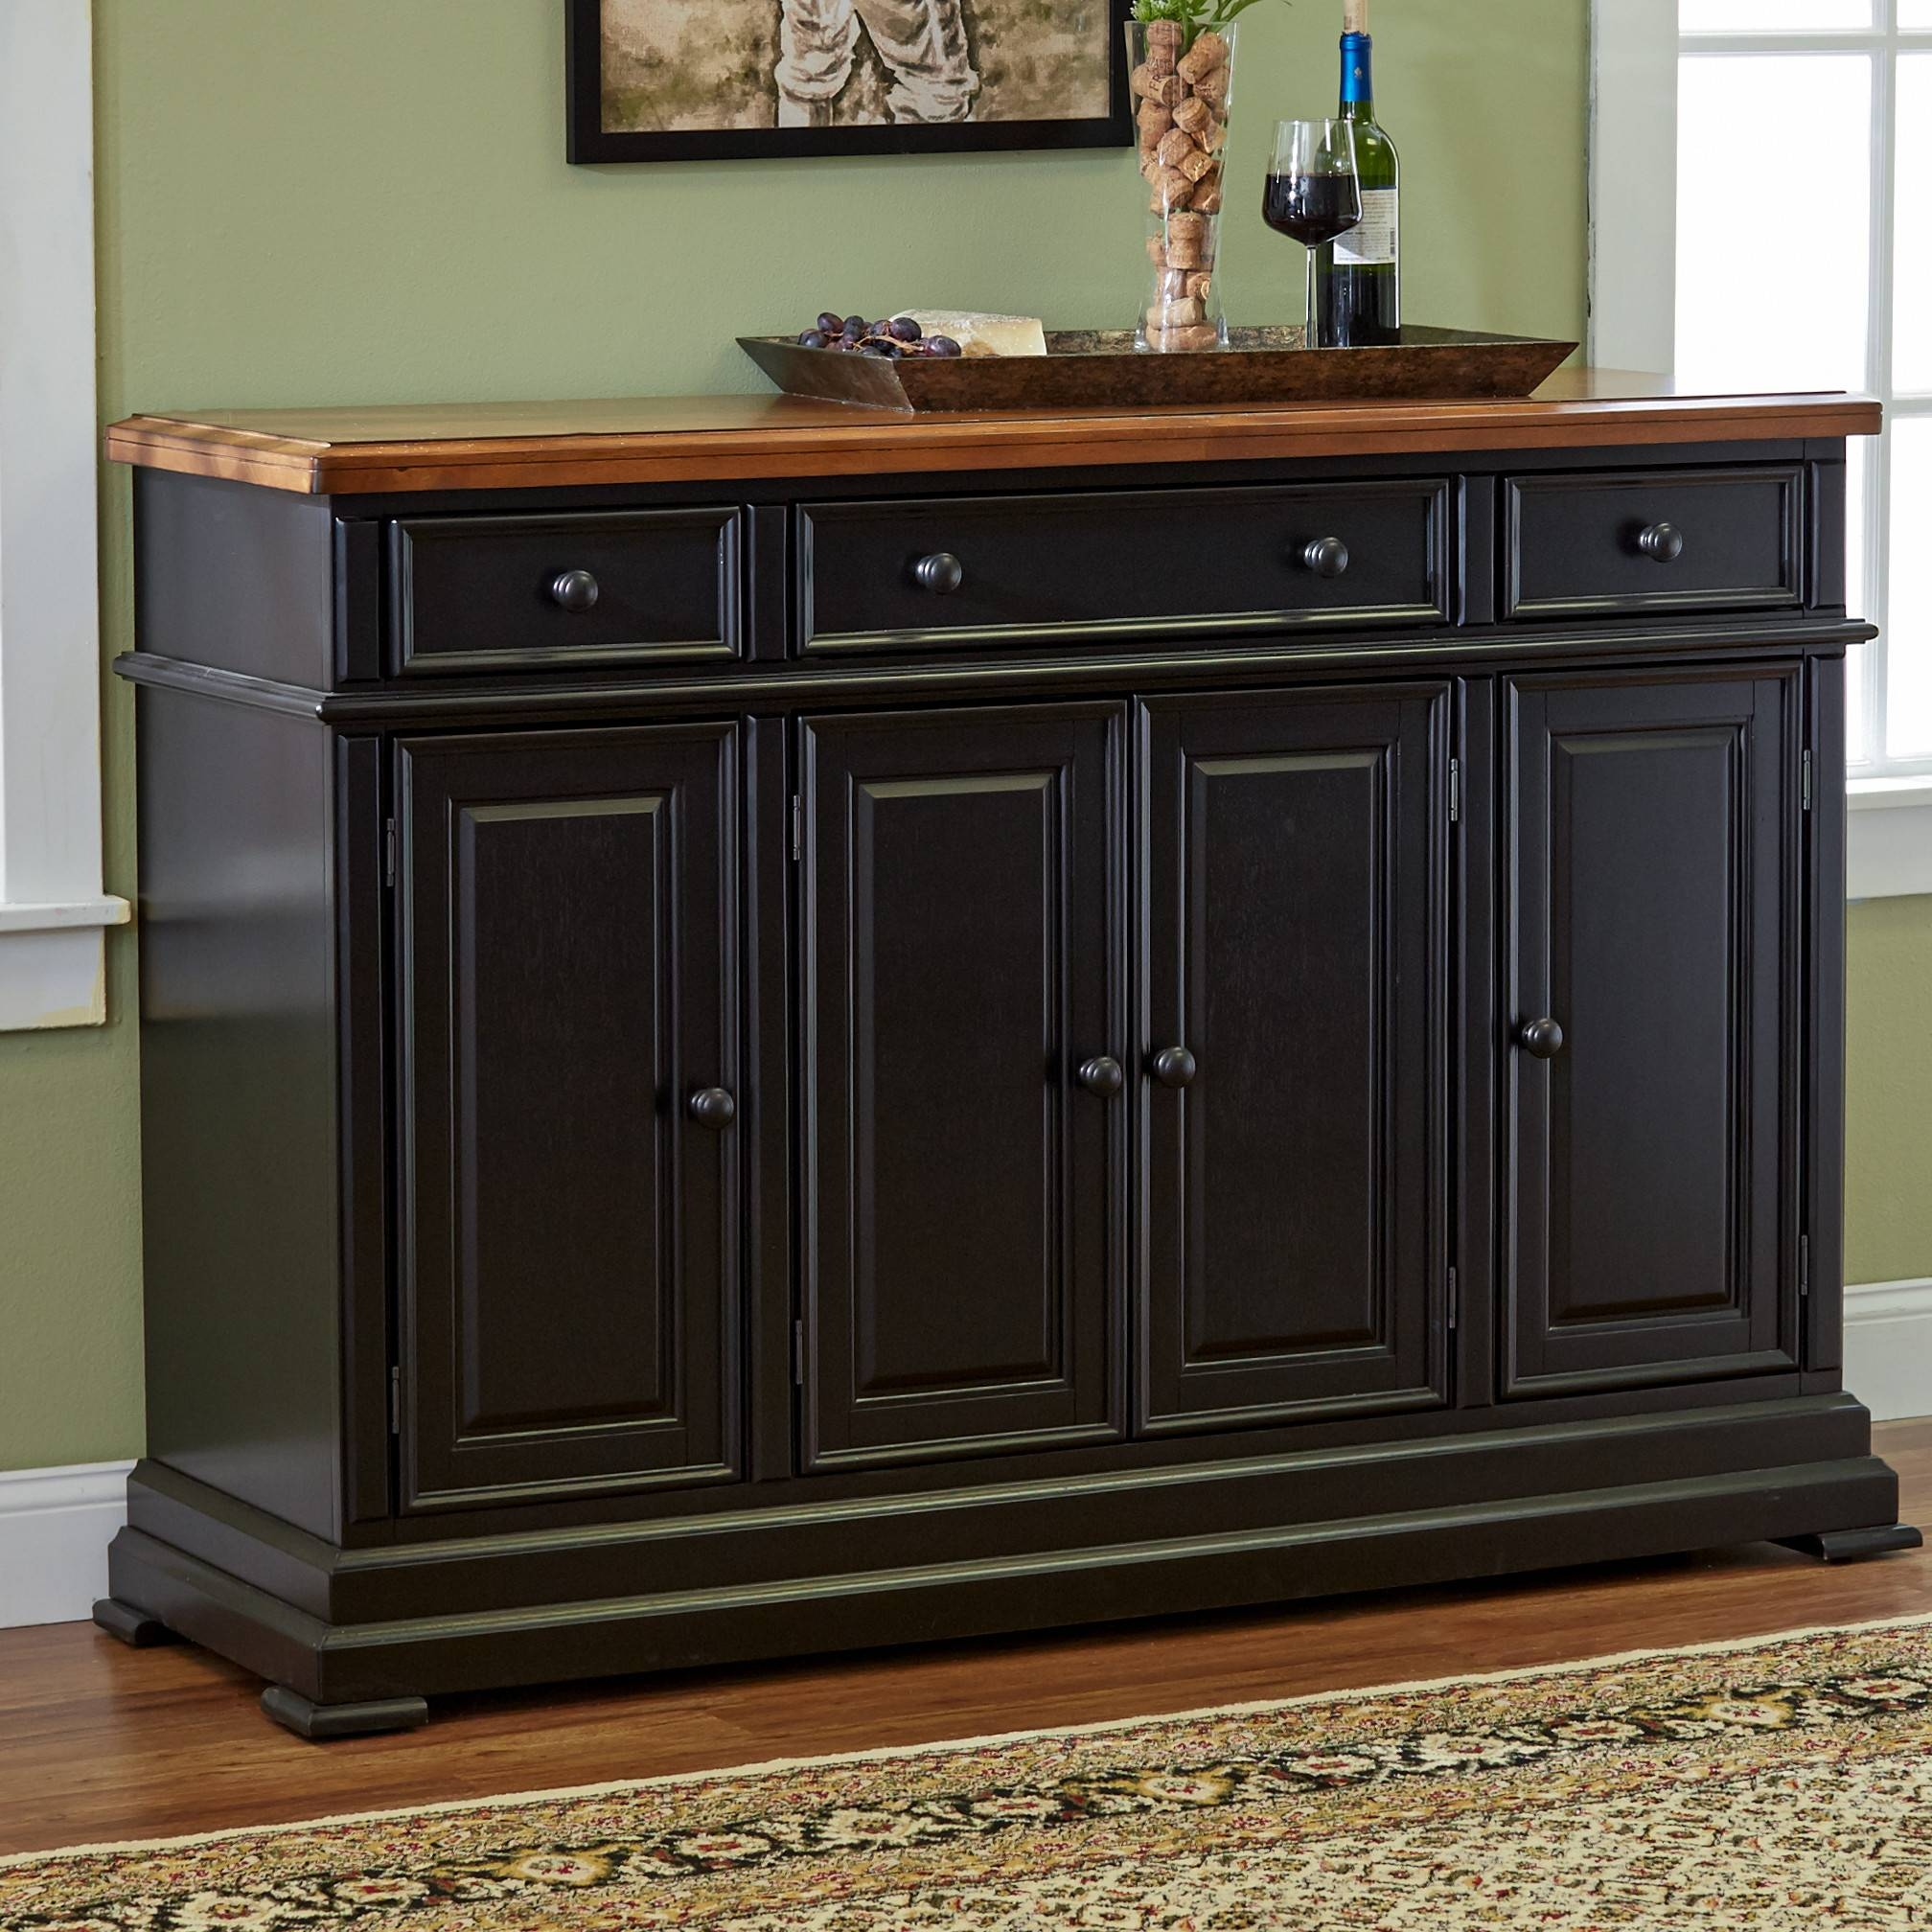 Dining Room Buffet Cabinet Sideboards Buffets Storage Servers 17 In Current Dining Room Buffets Sideboards (#8 of 15)